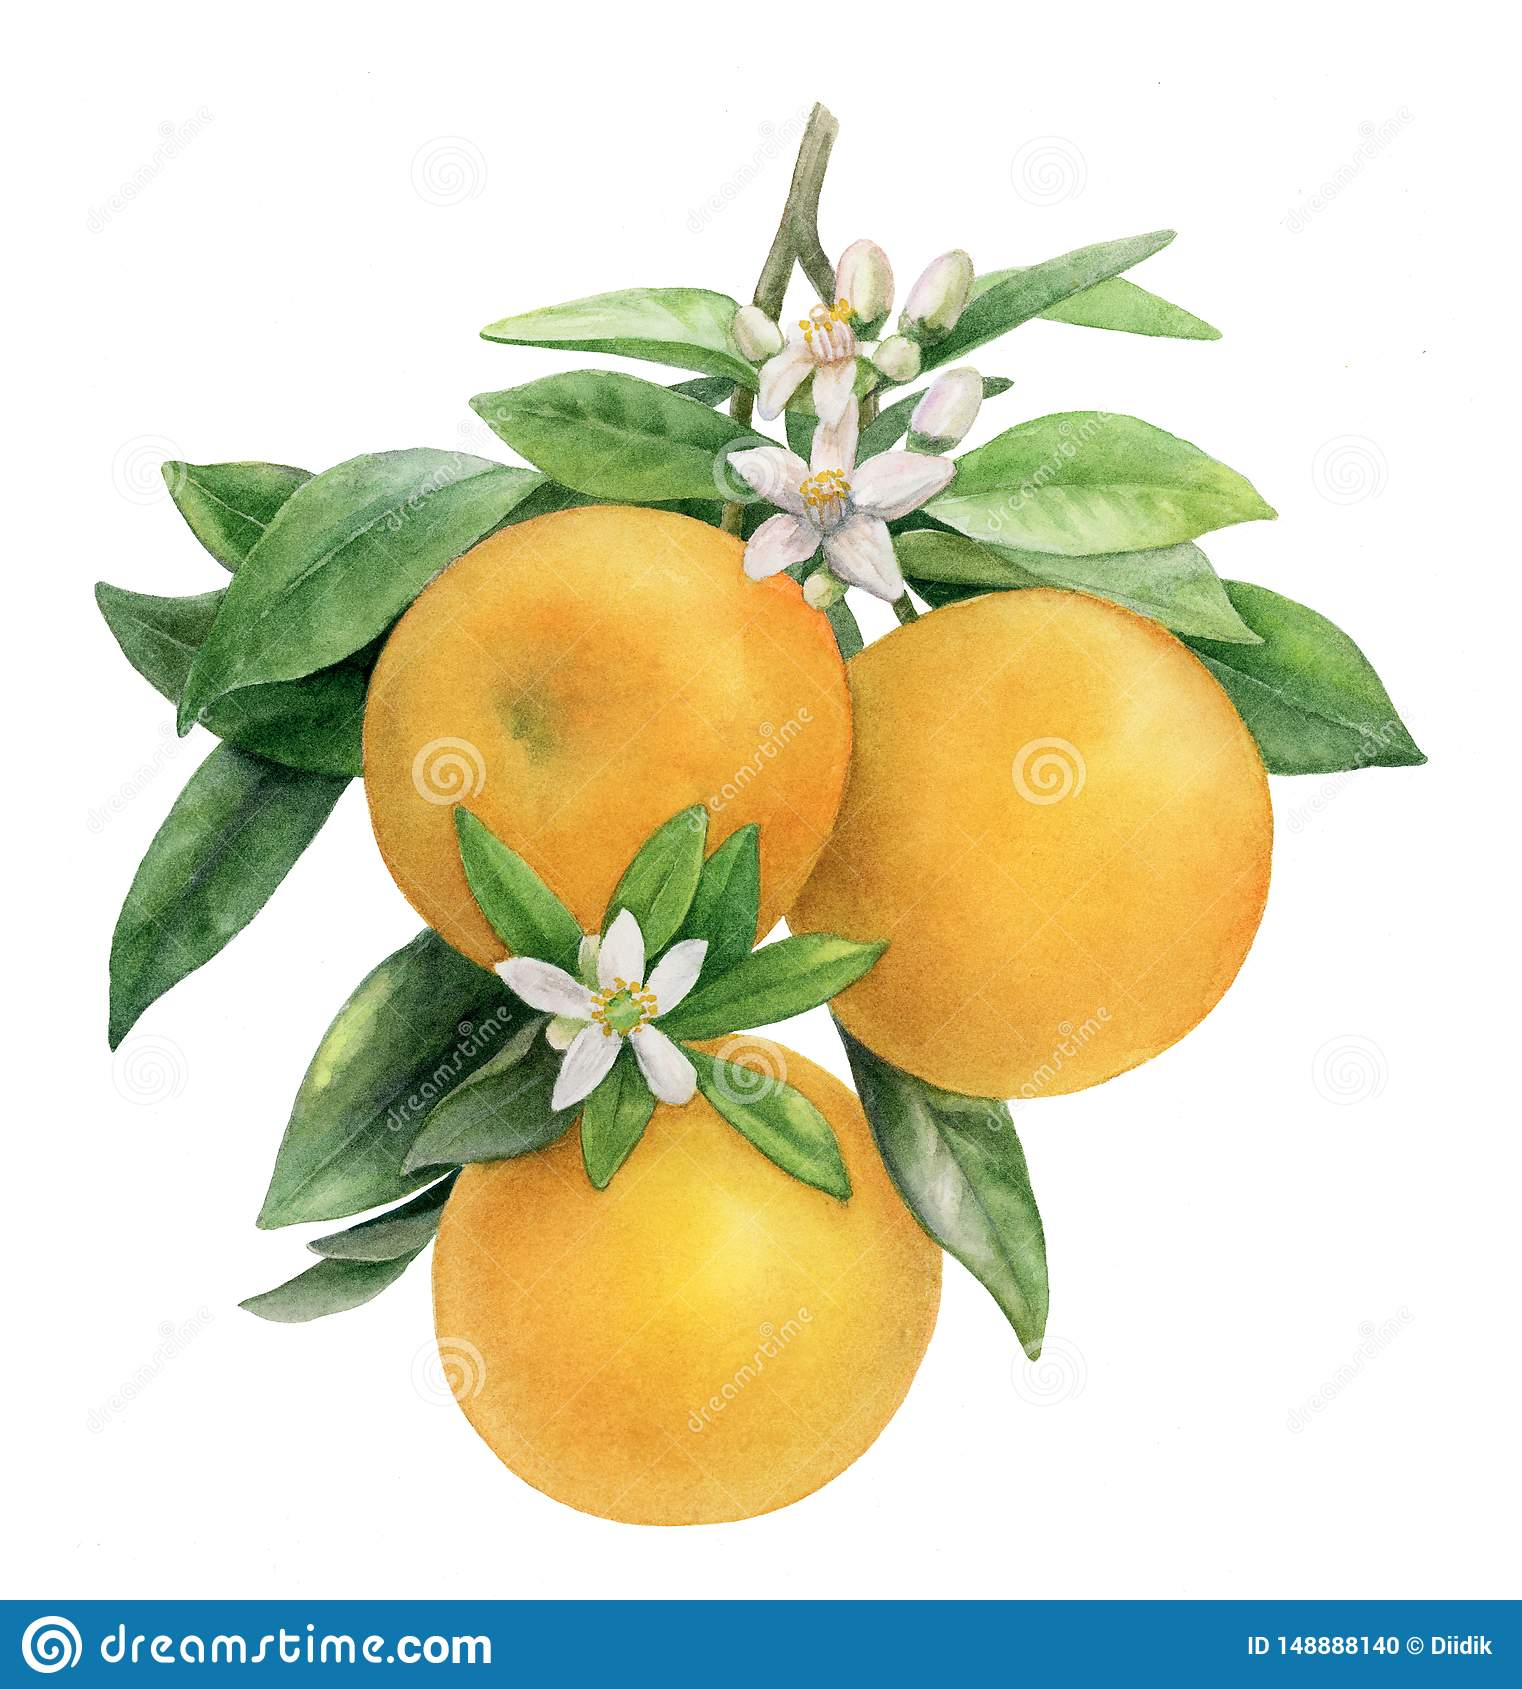 Orange Branch With Fruits And Flowers Hand Draw Illustration Stock Illustration Illustration Of Sketch Branch 148888140